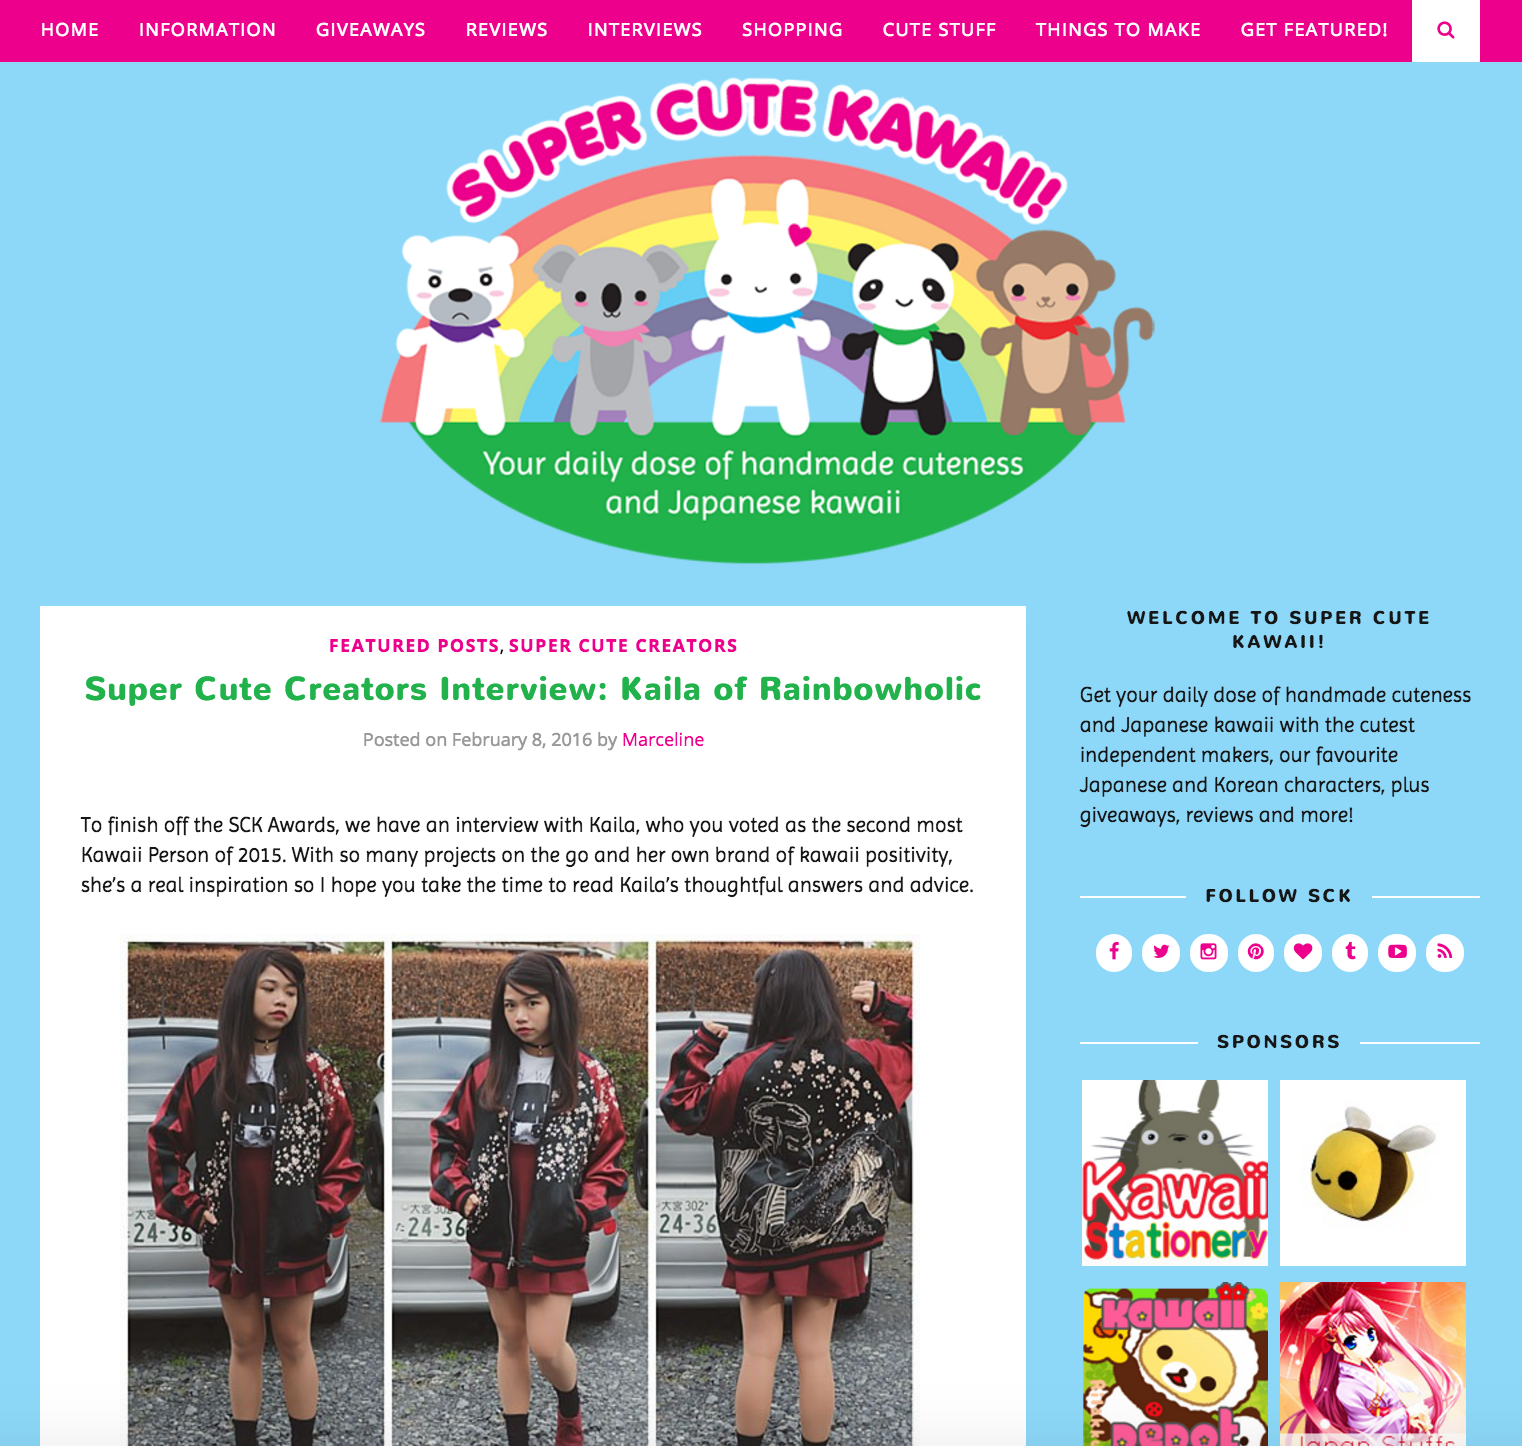 super cute kawaii - kaila rainbowholic